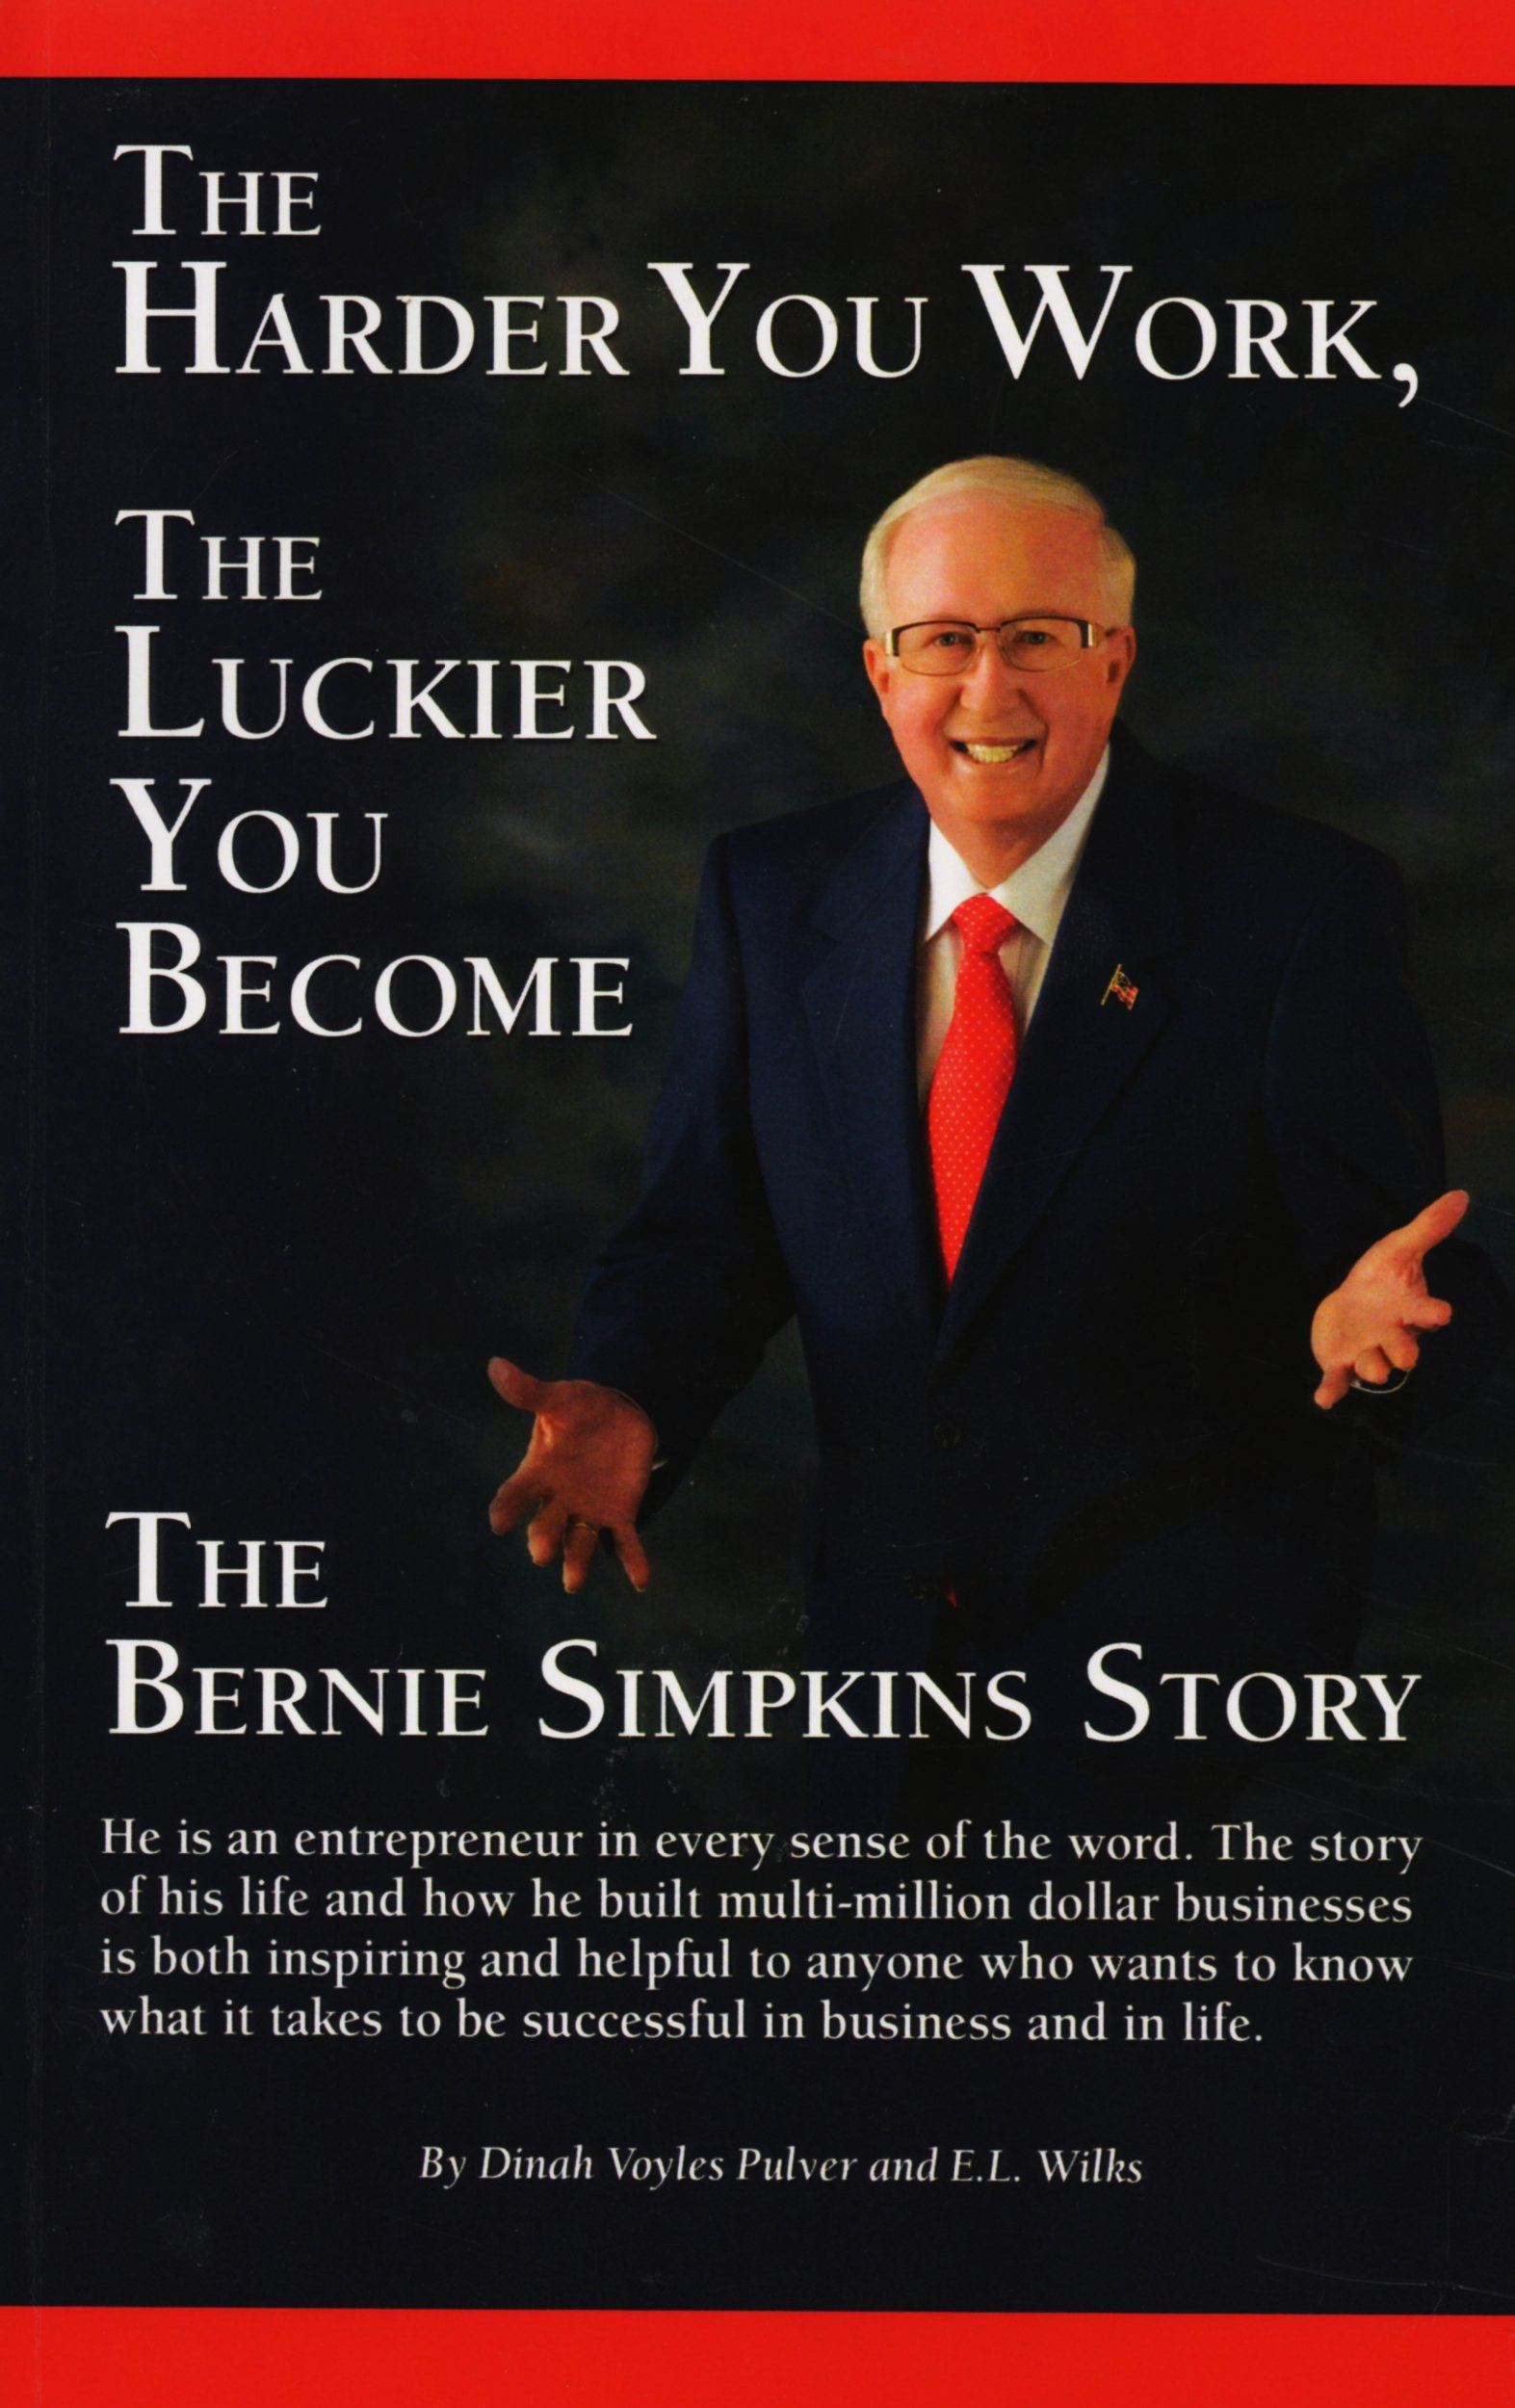 The Harder You Work, The Luckier You Become: The Bernie